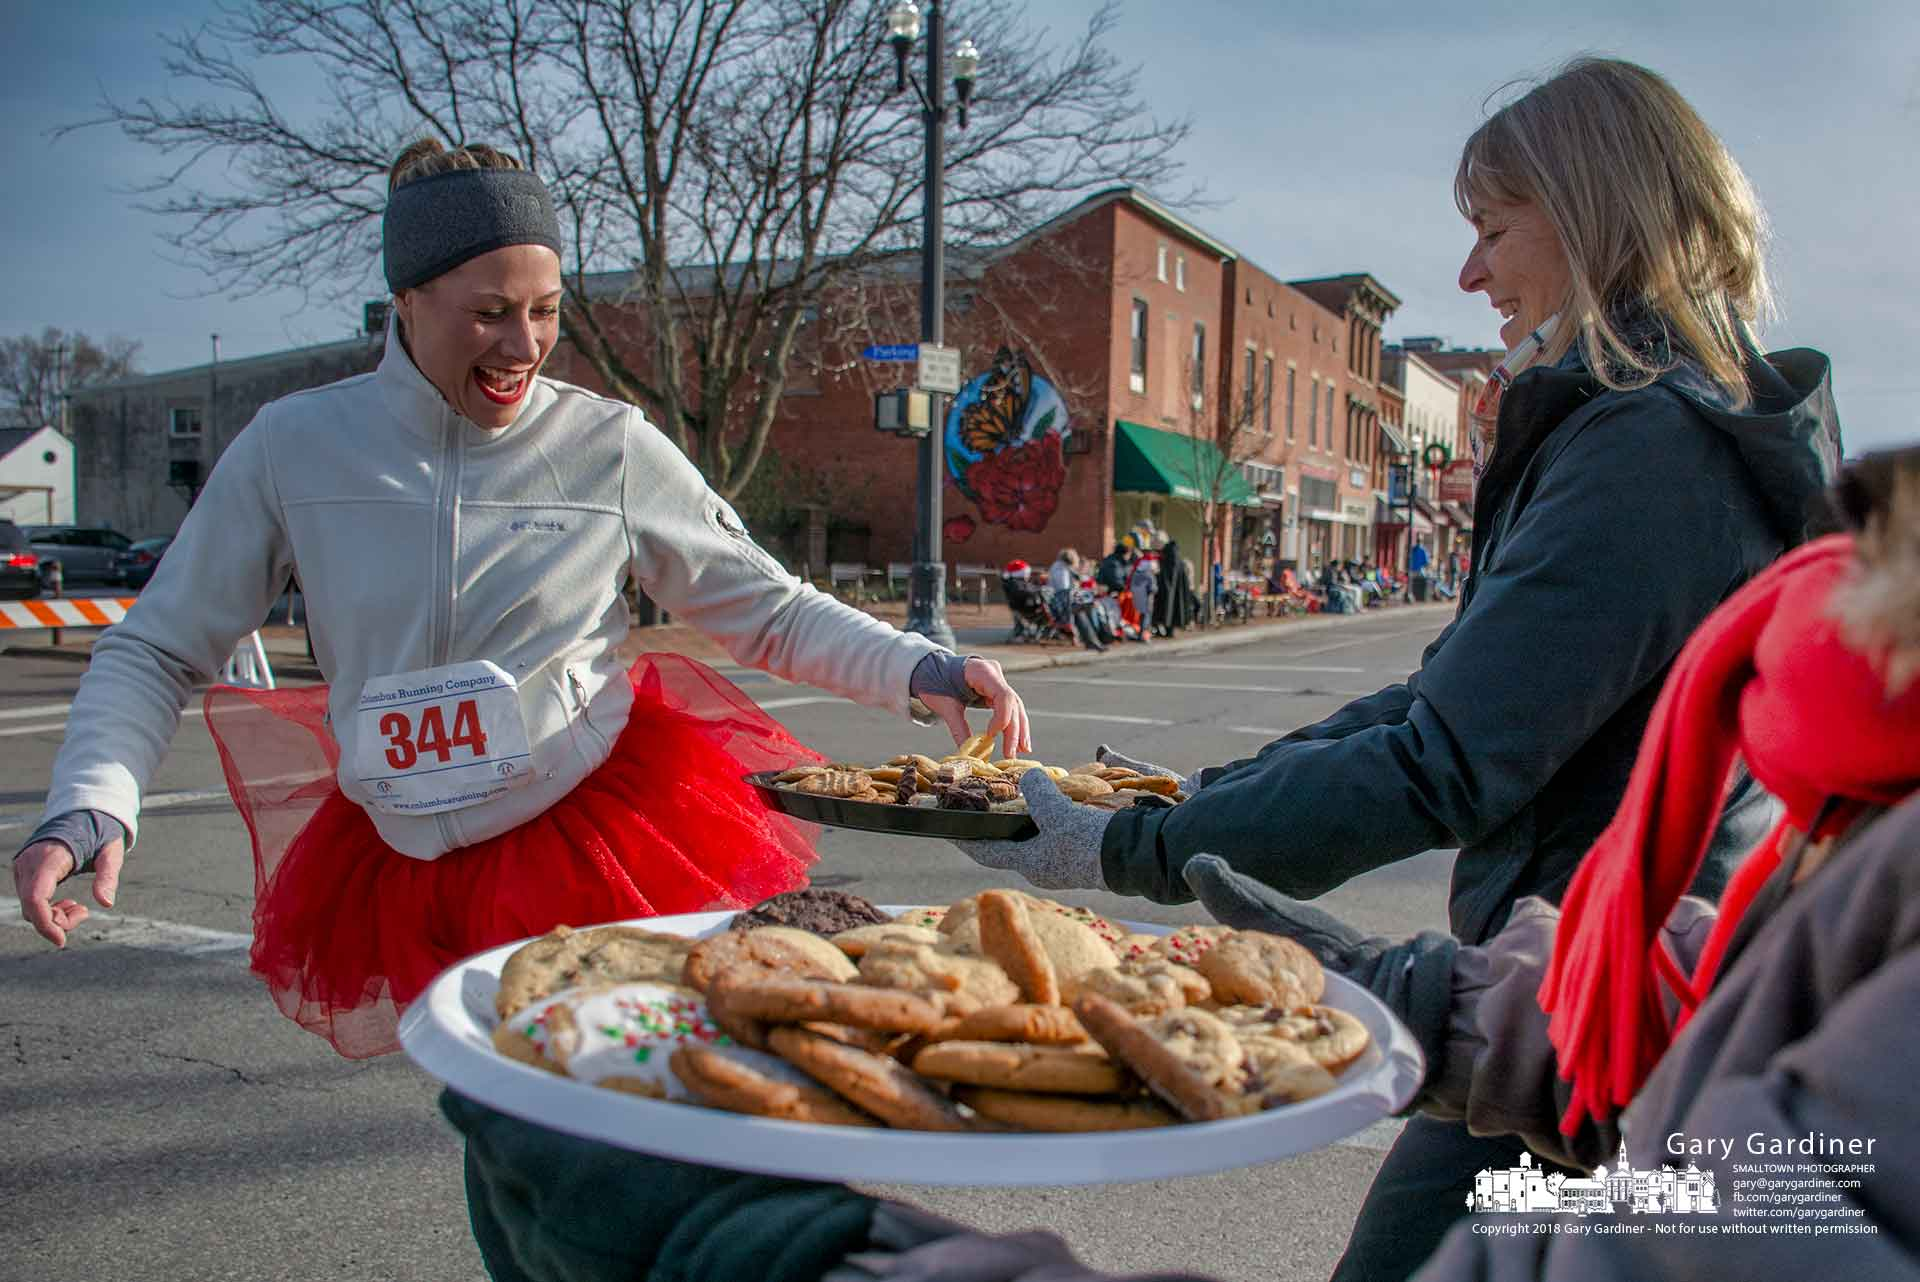 A Rudolph Run 5K runner smiles as she grabs her choice of cookie from trays offered to runners near the completion of the race before the Christmas parade. My Final Photo for Dec. 9, 2018.